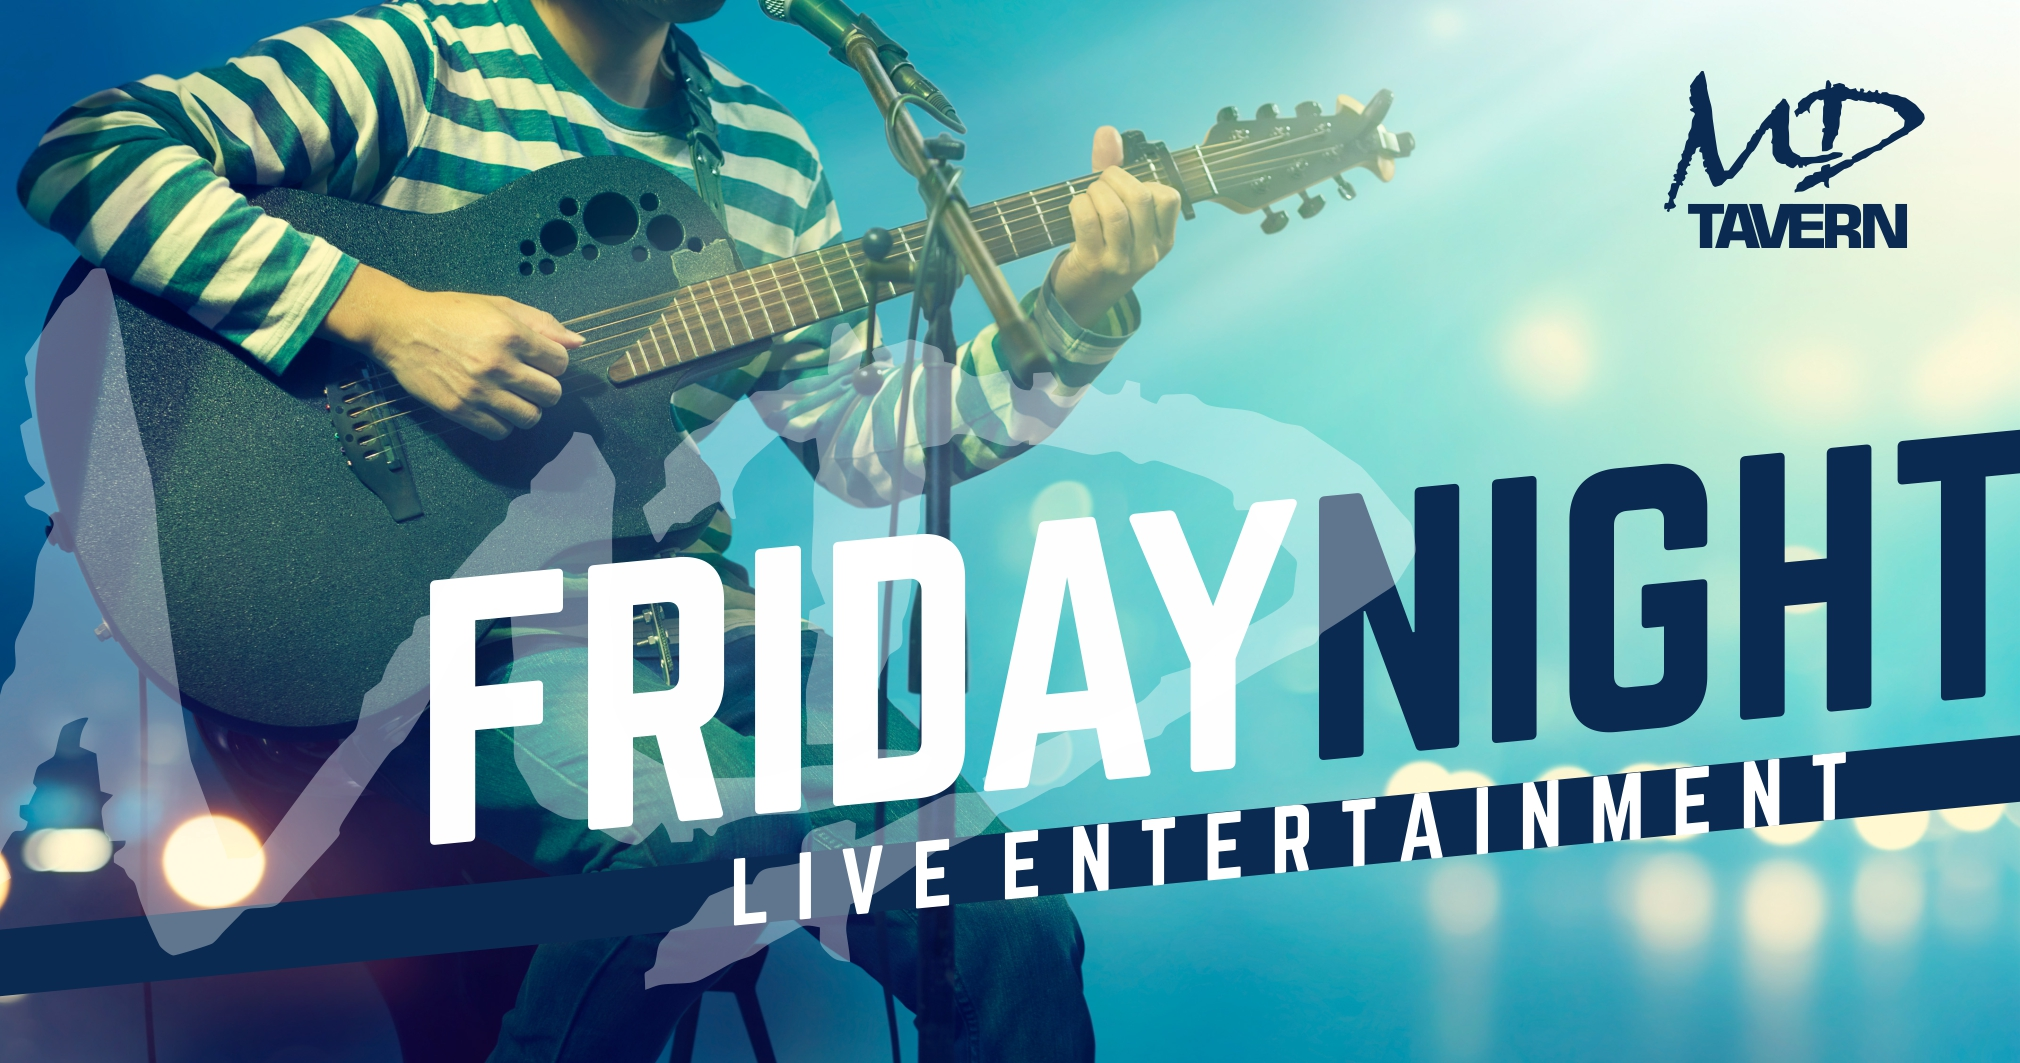 Friday Live Entertainment MD Tavern